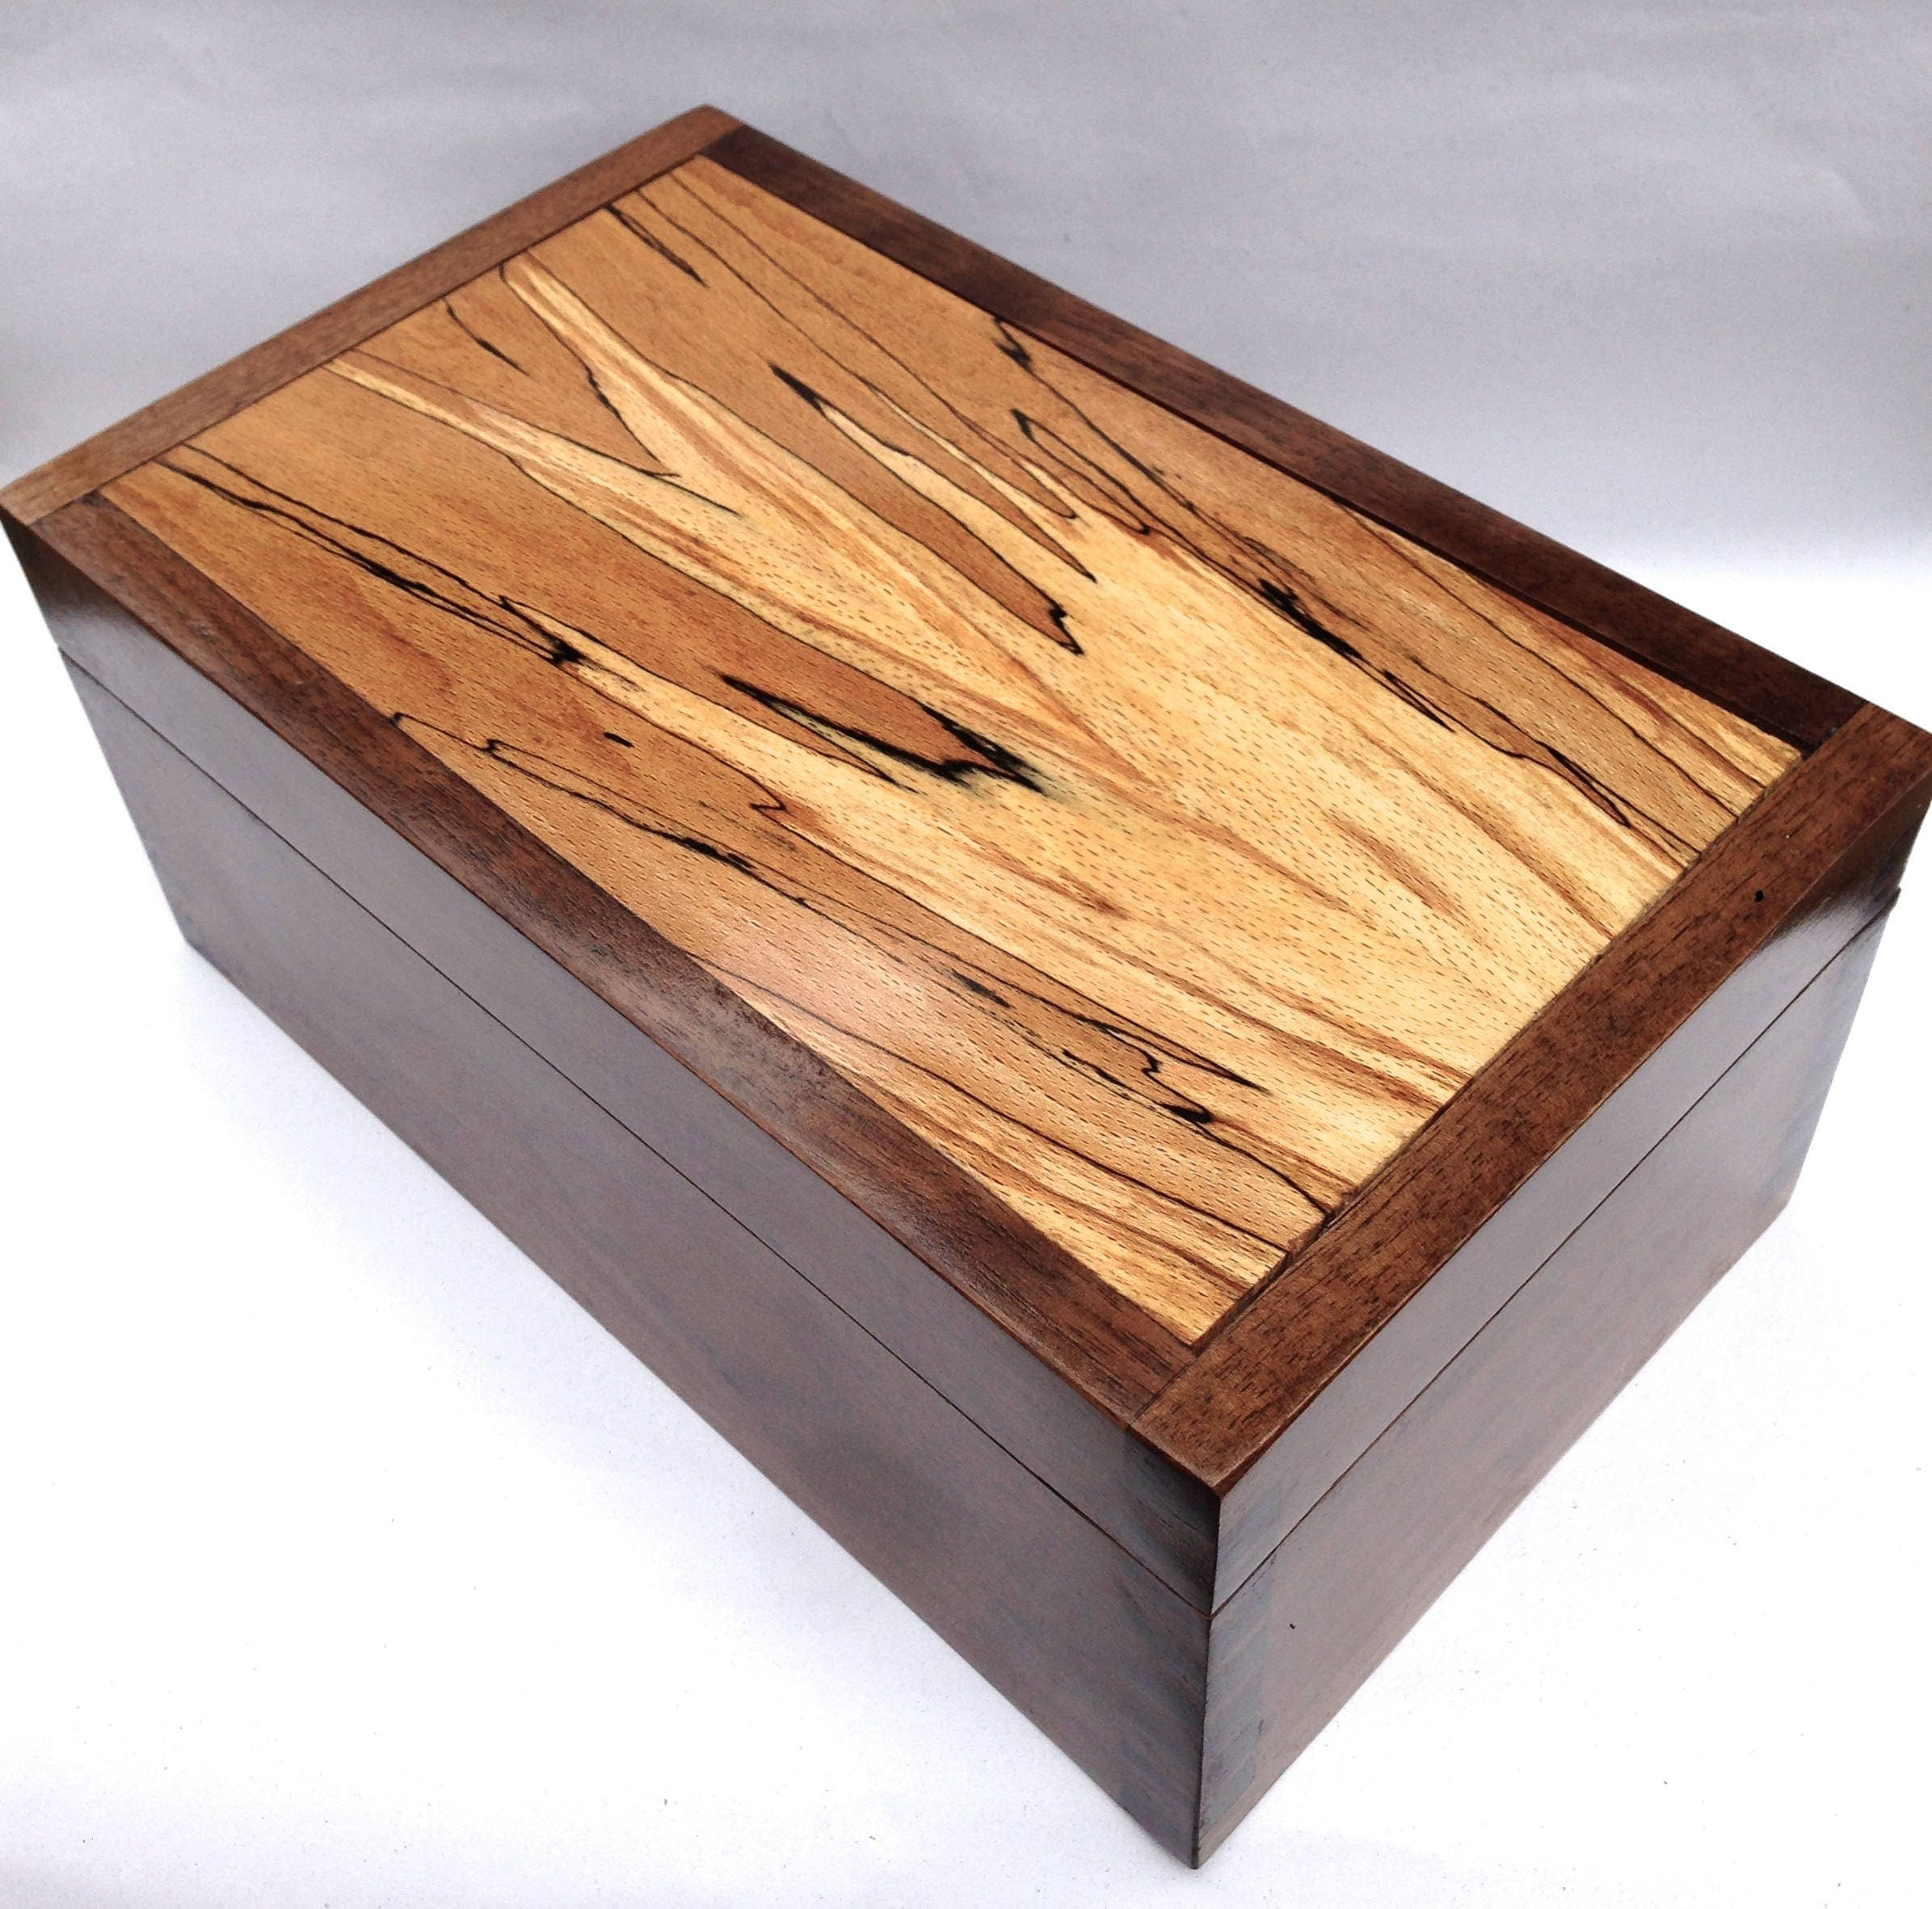 Digby  Handmade fine wood box contemporary walnut and spalted beech jewellery box but you can customise it in wood size and interior.